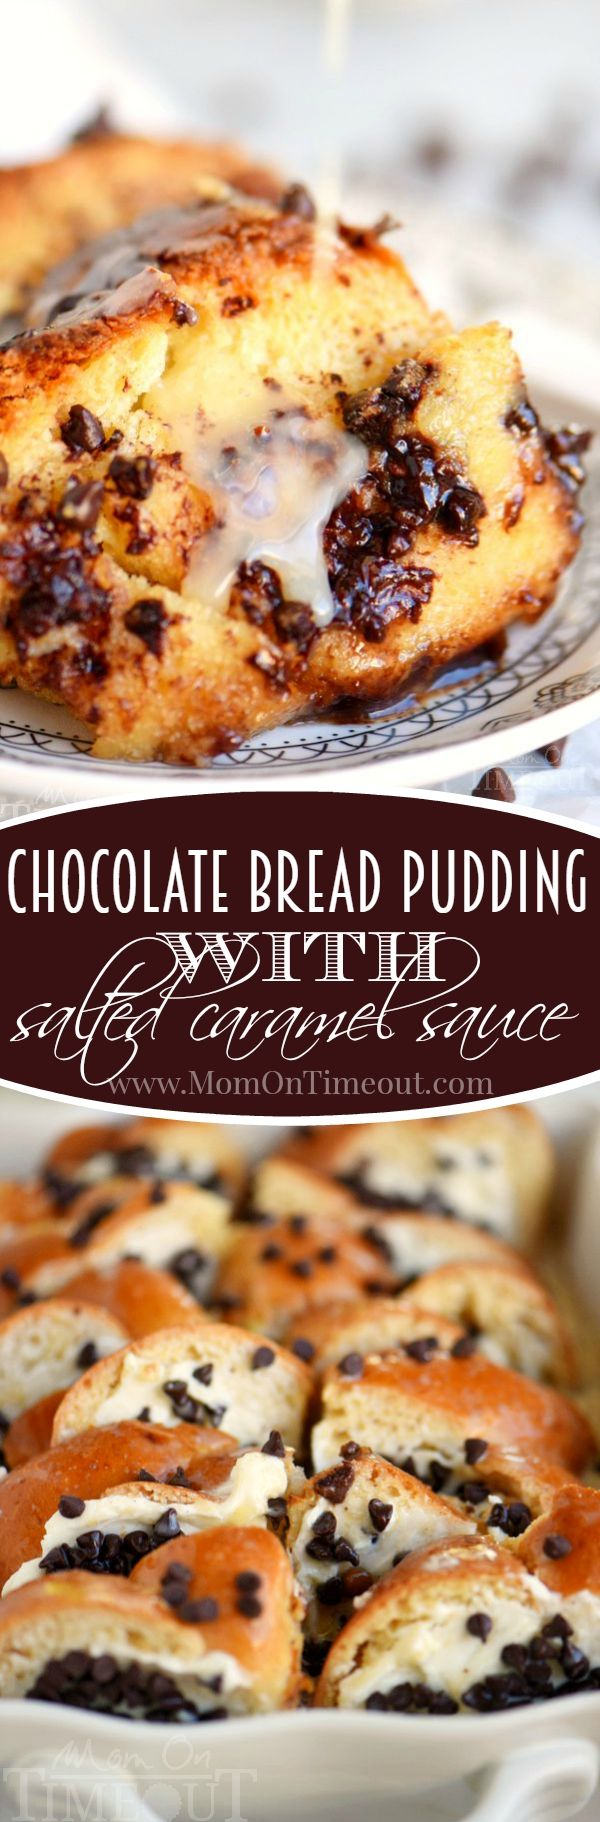 Decadence meets comfort in this easy Chocolate Bread Pudding with Salted Caramel Sauce recipe! This sauce is to die for!